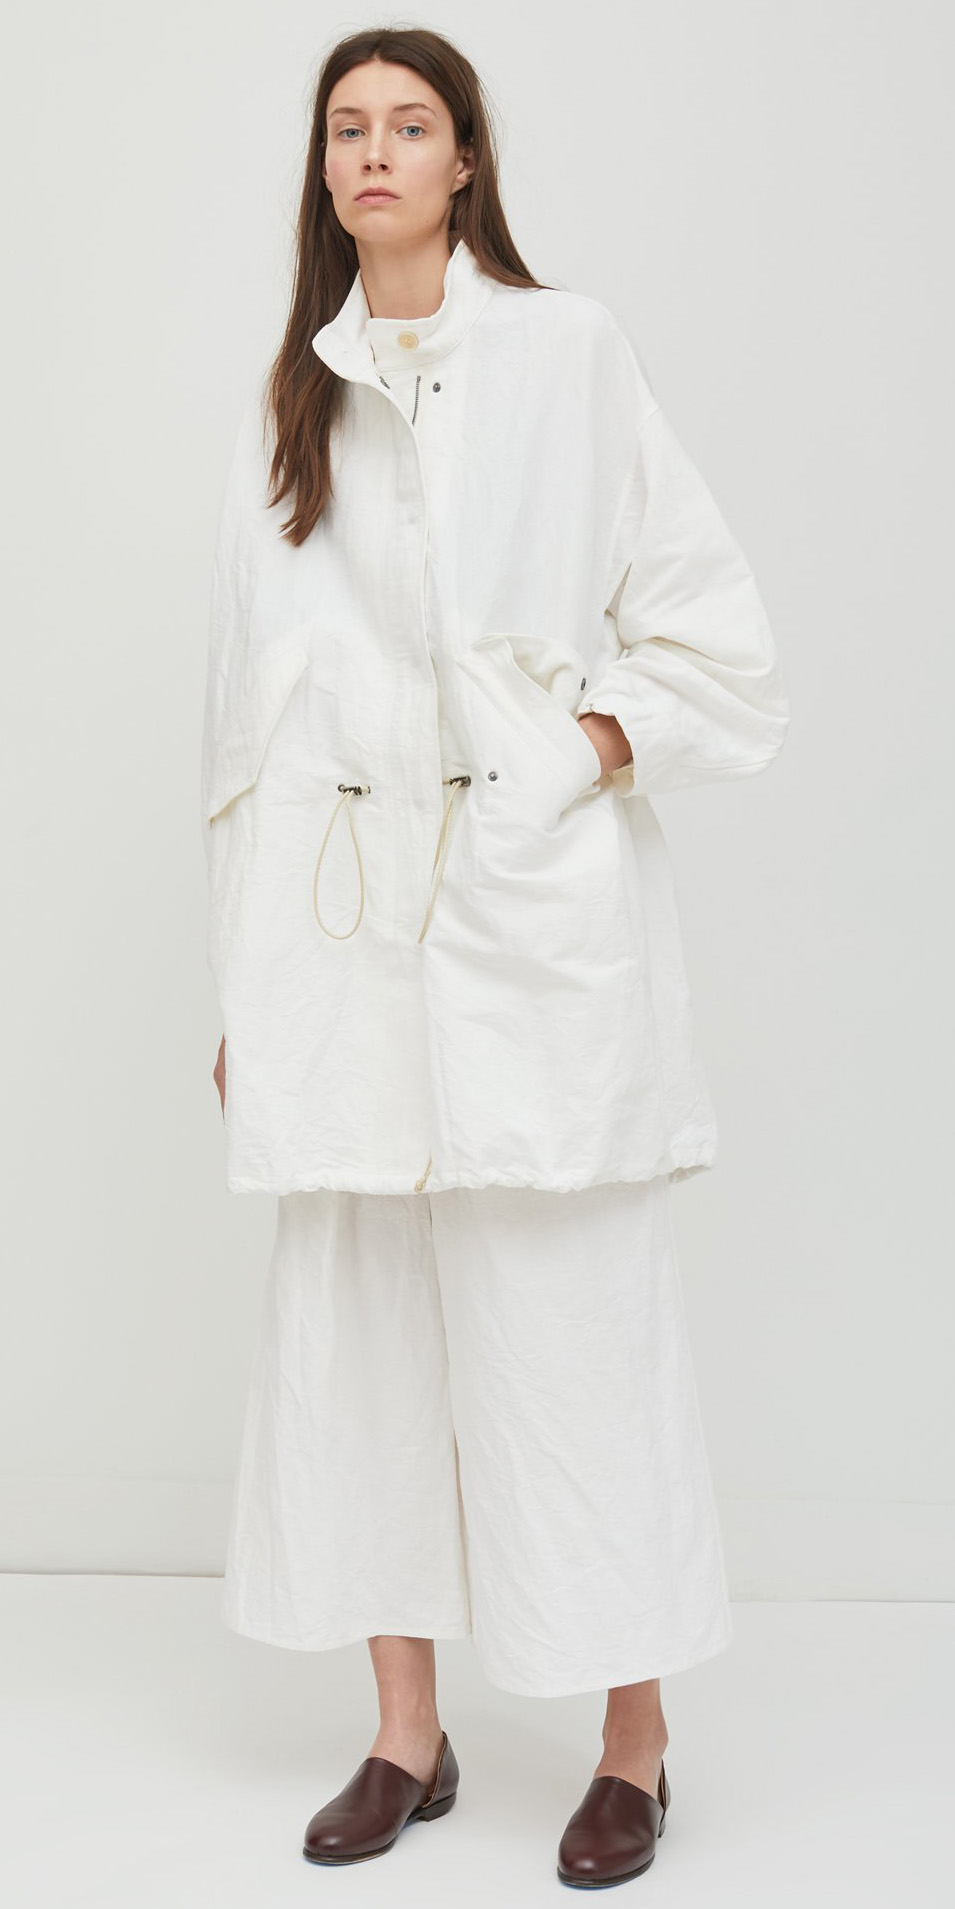 white-culottes-pants-brown-shoe-booties-hairr-white-jacket-coat-parka-fall-winter-lunch.jpg